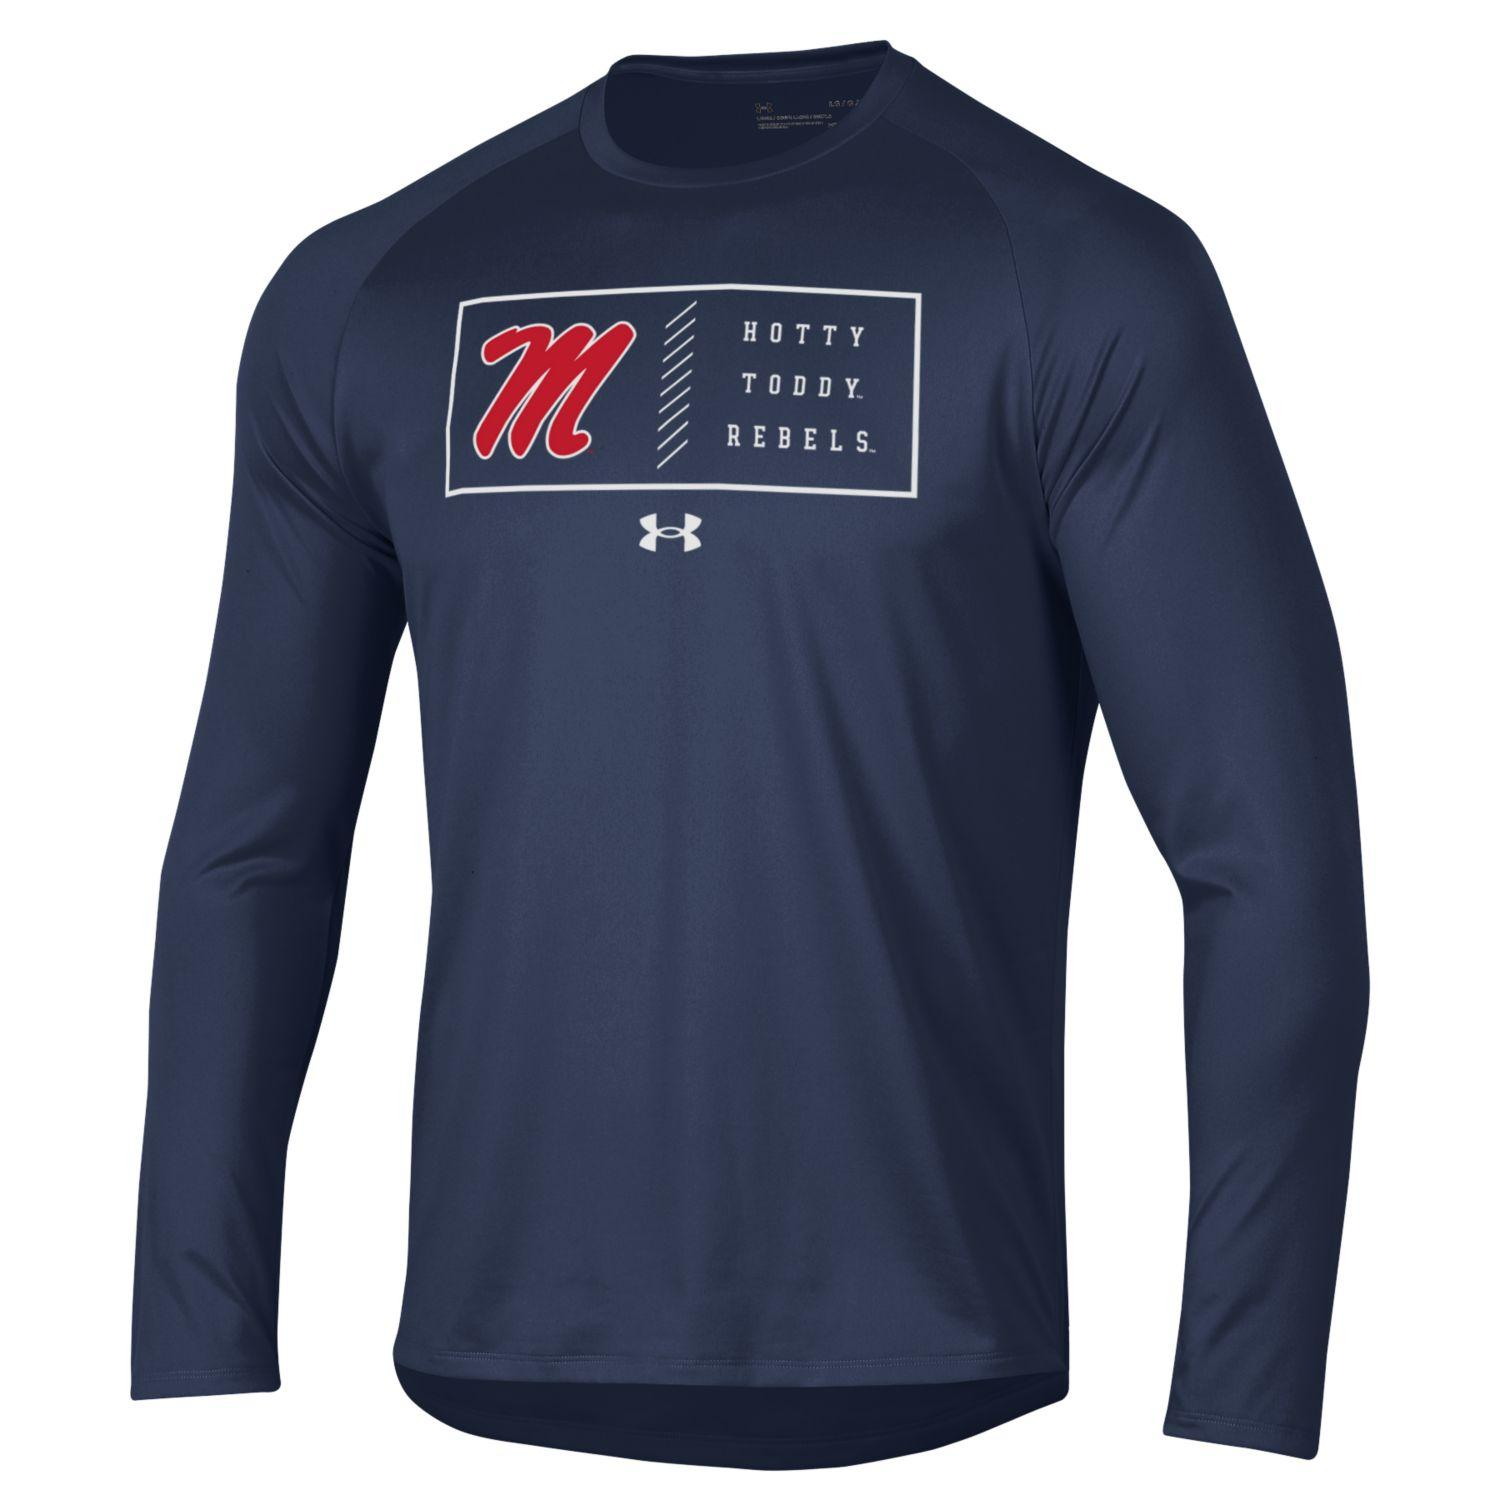 Under Armour Mens Long Sleeve Polyester Tech Tee Navy